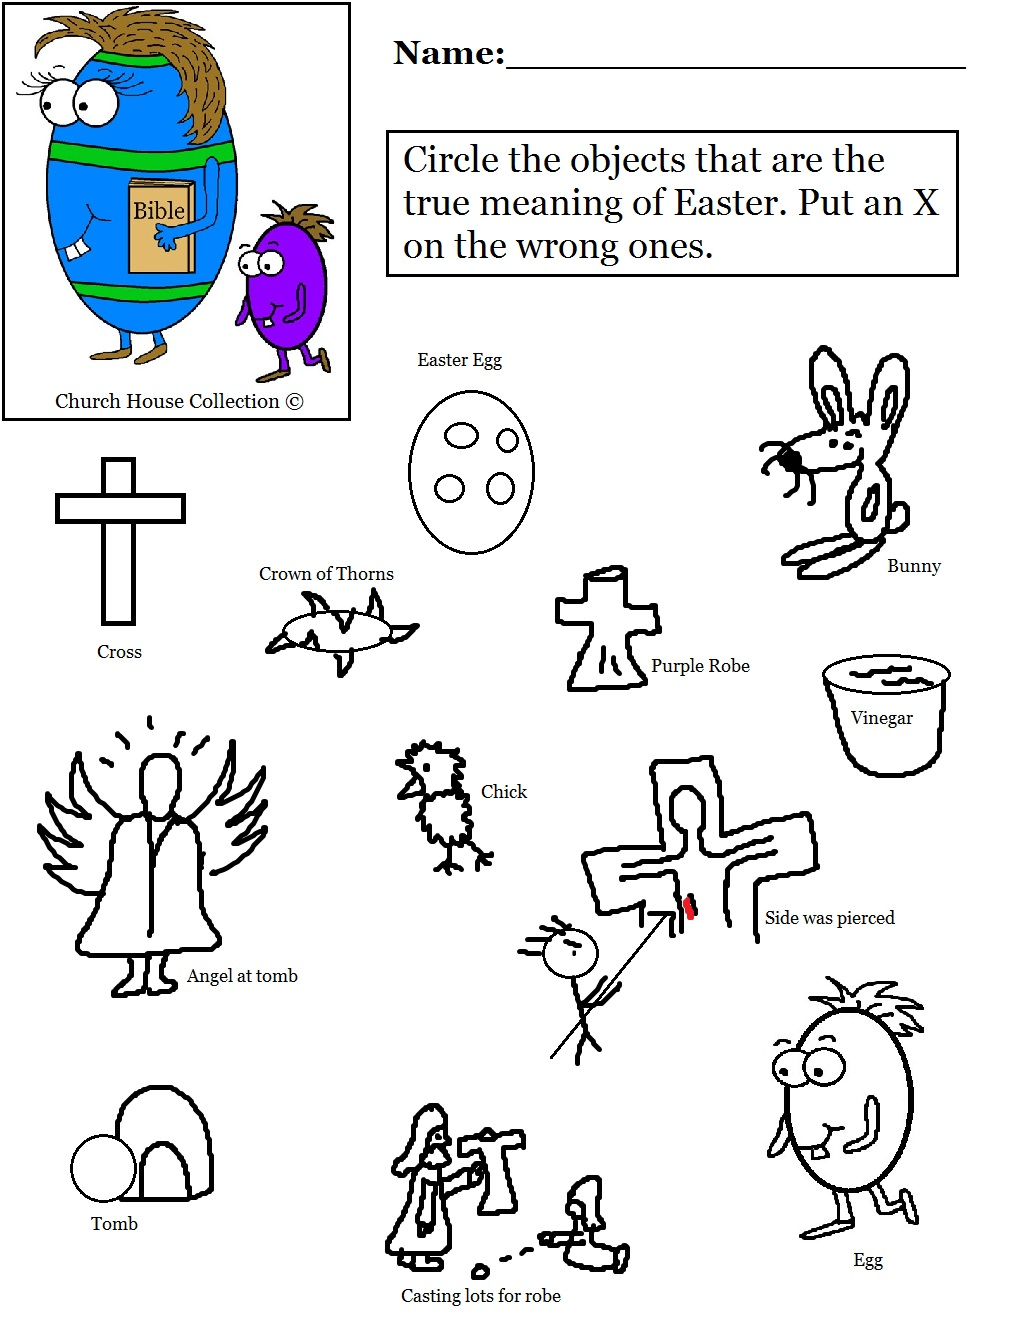 Printables Sunday School Printable Worksheets printables sunday school printable worksheets safarmediapps church house collection blog easter egg with bible worksheet worksheet